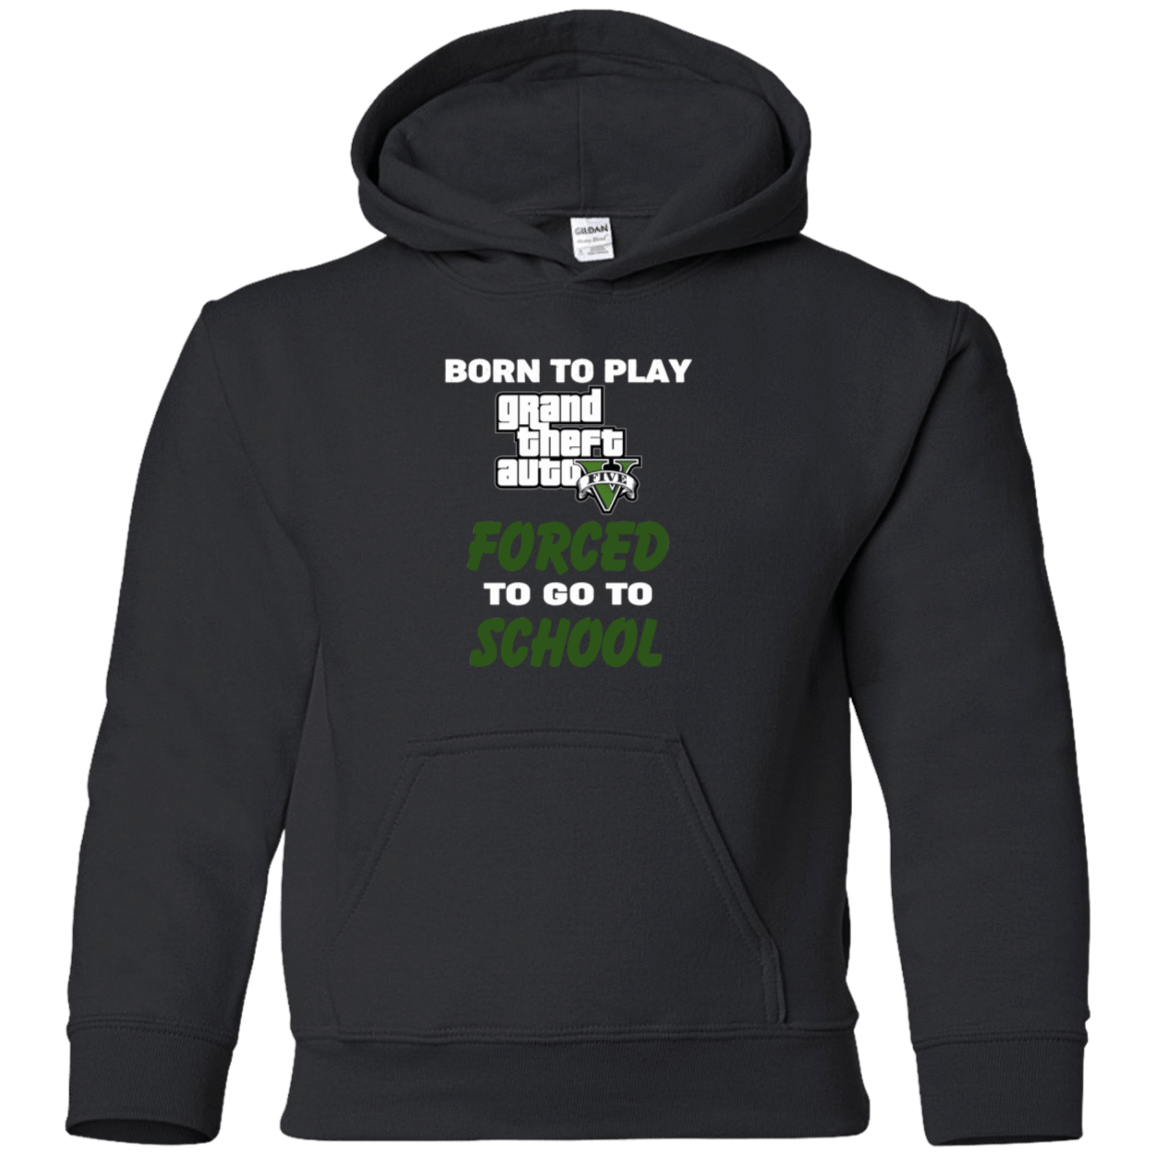 Born To Play Grand Theft Auto Forced To Go To School 59-333-74209588-1281 - Tee Ript